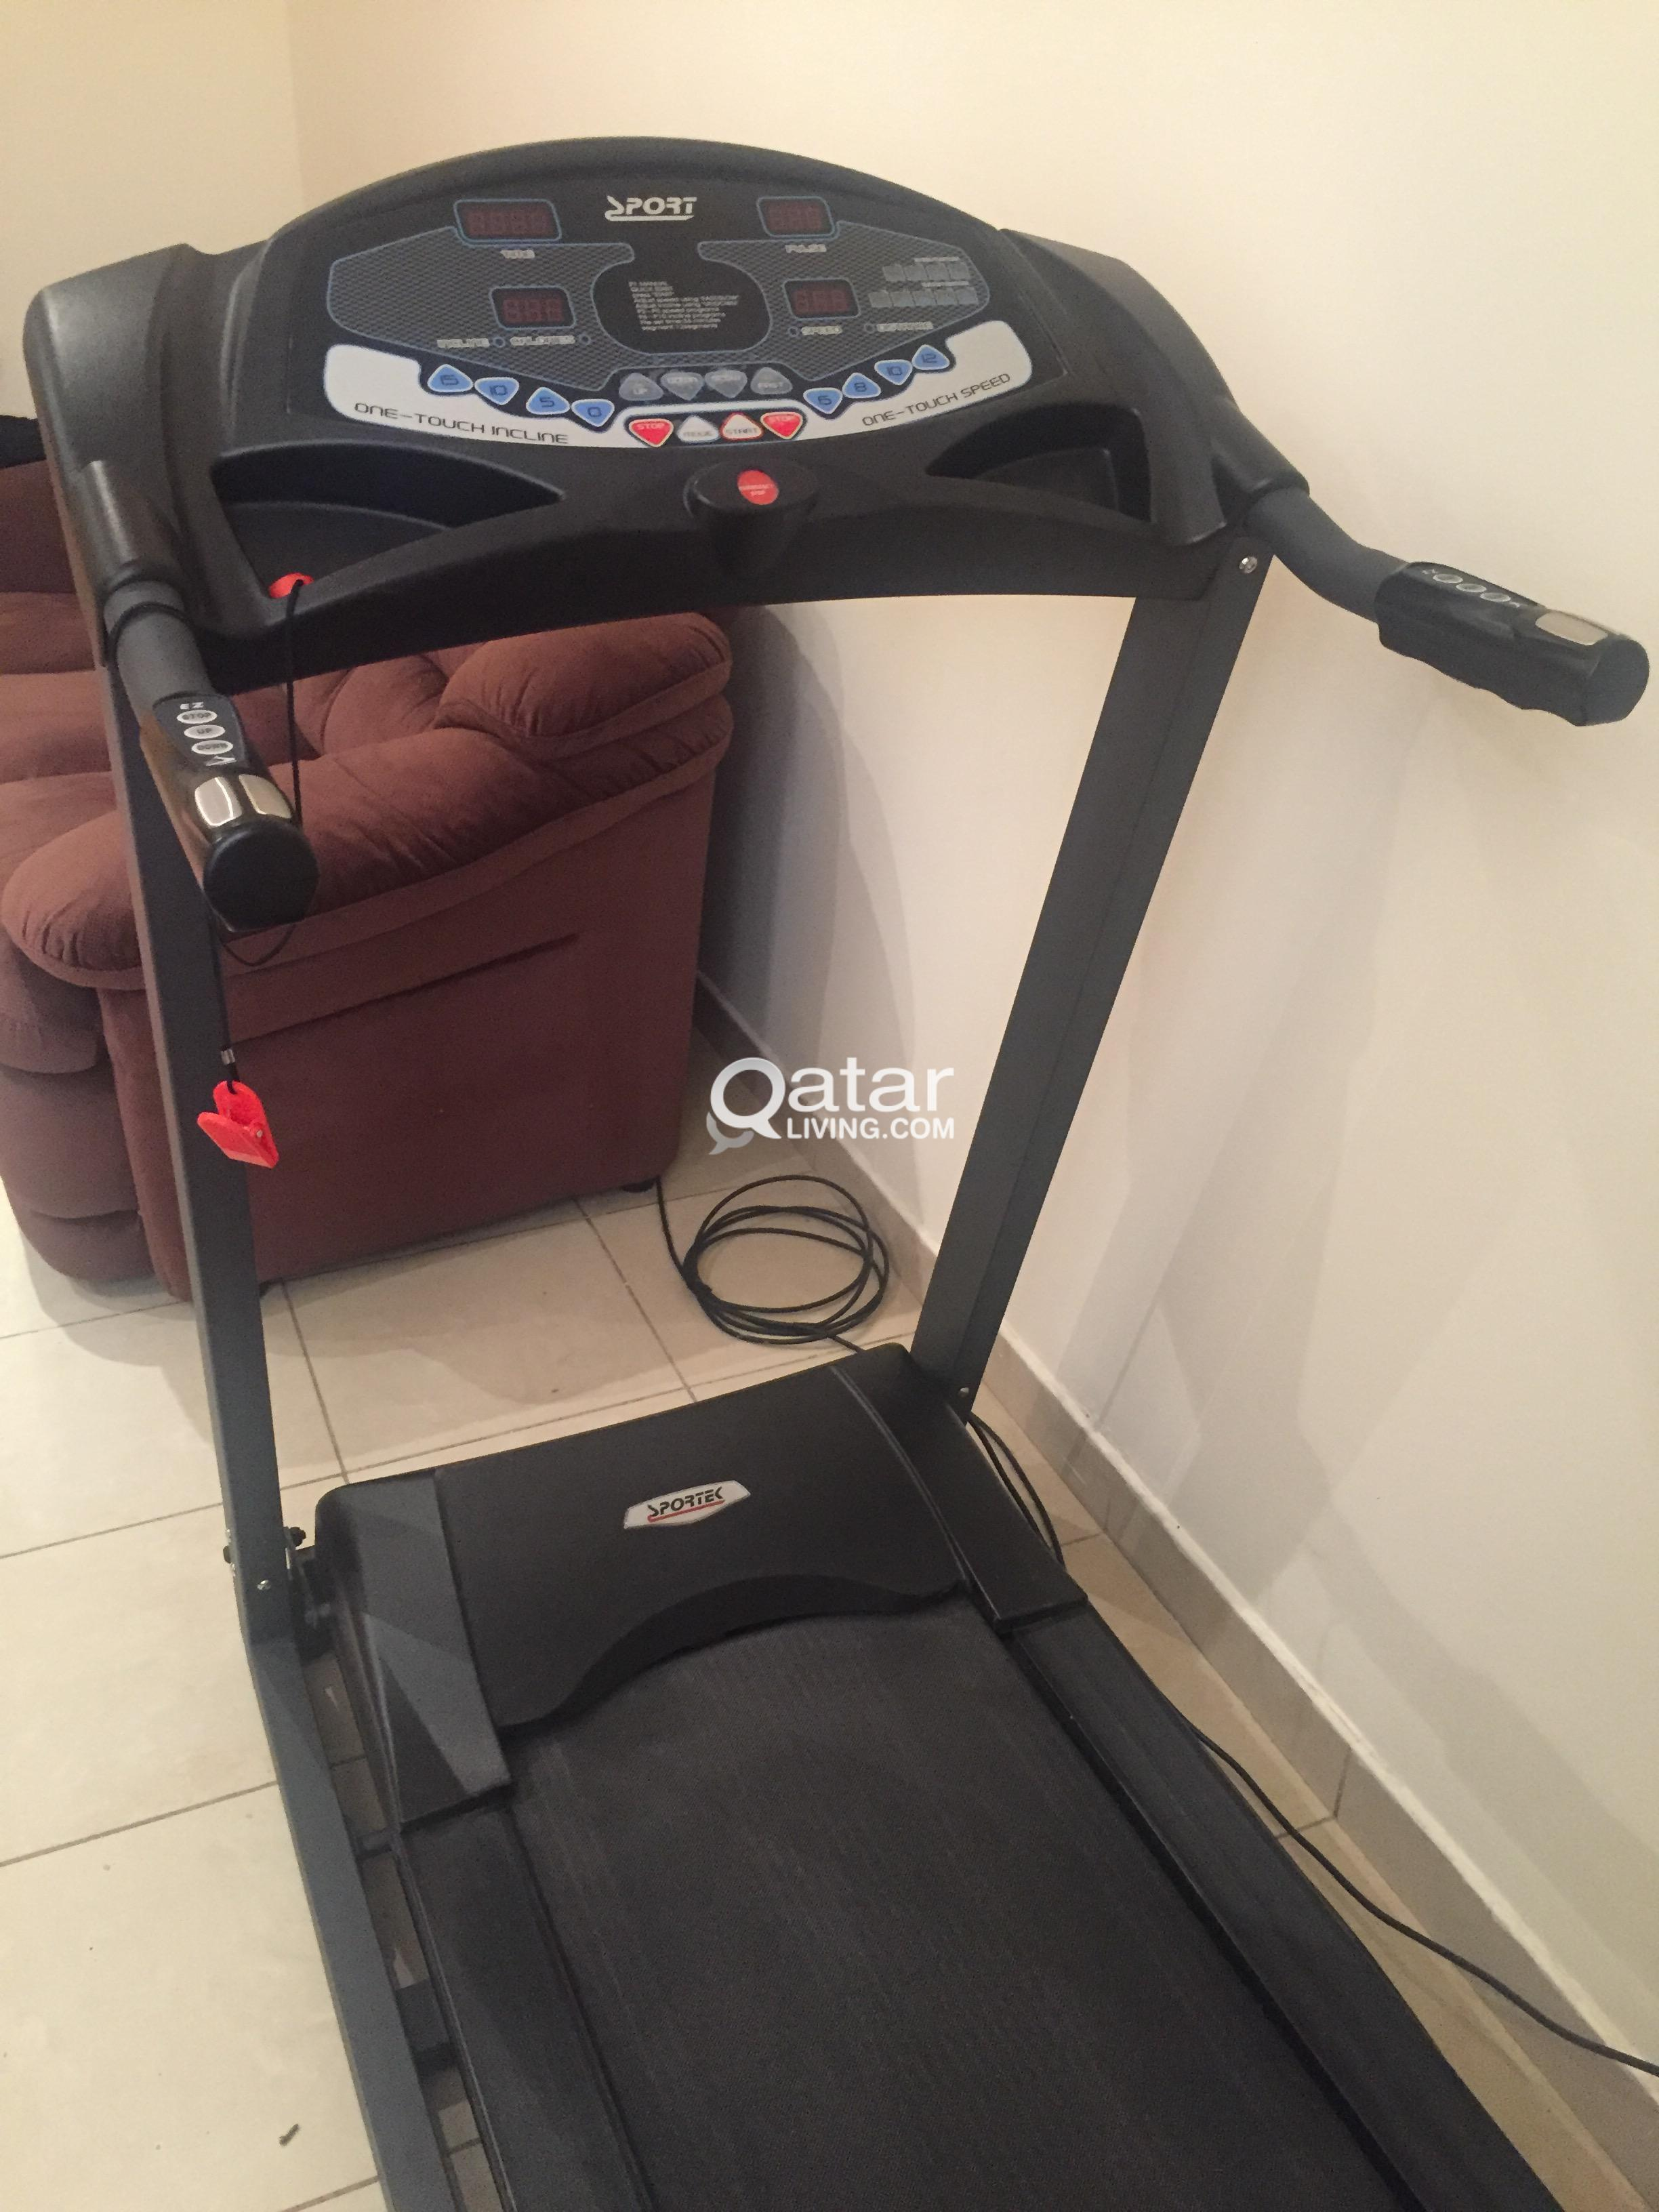 Sportek Treadmill For Sale Qatar Living Innovative, easy to install, intuitive and perfect looking, sportek products are designed by cyclists for cyclists! sportek treadmill for sale qatar living